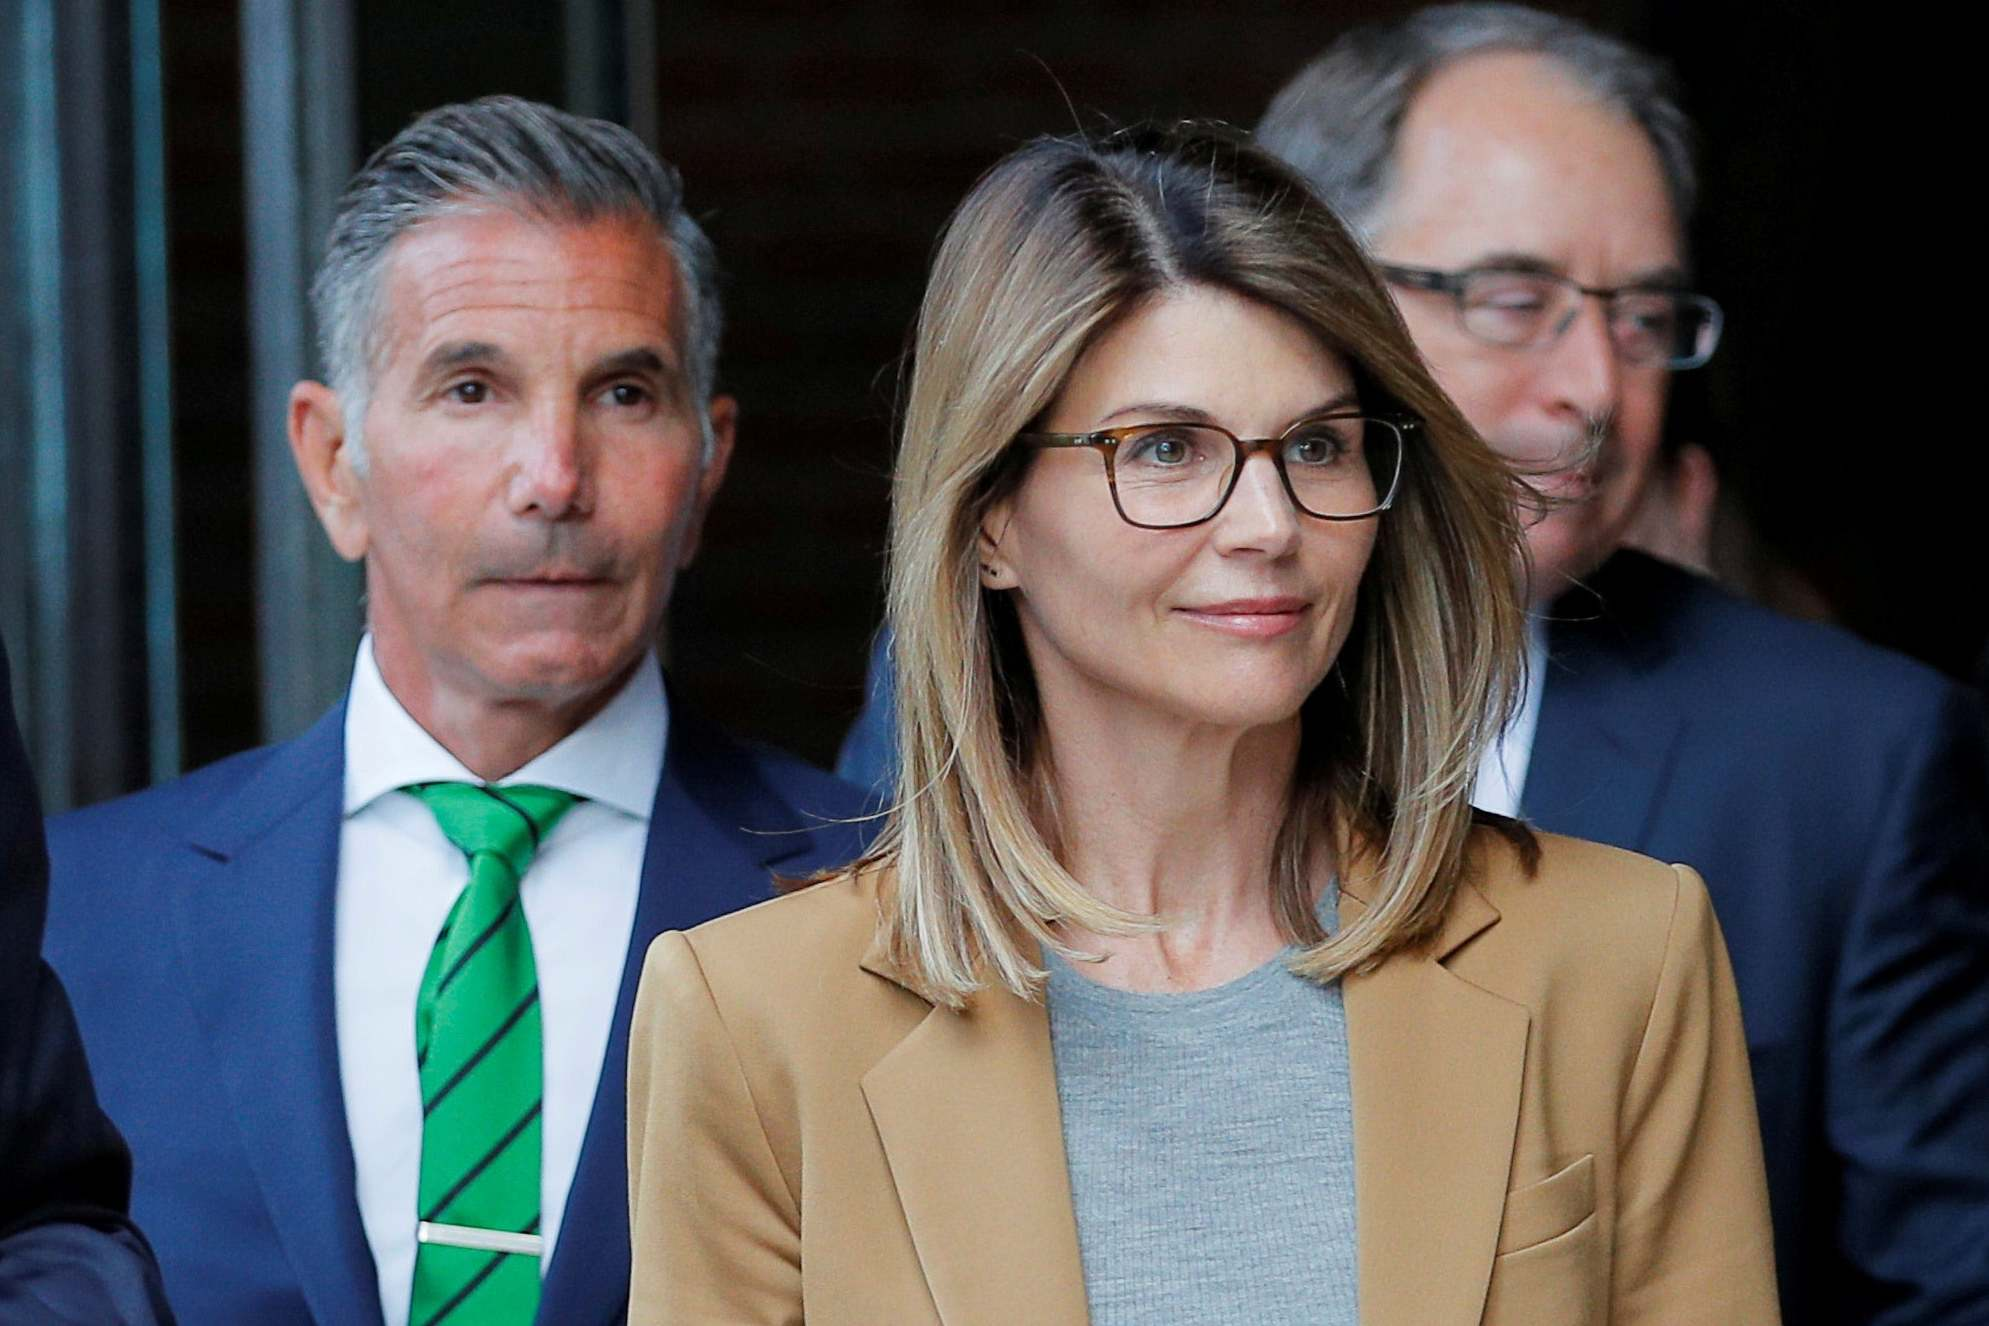 Lori Loughlin released after serving jail term for university bribes scam